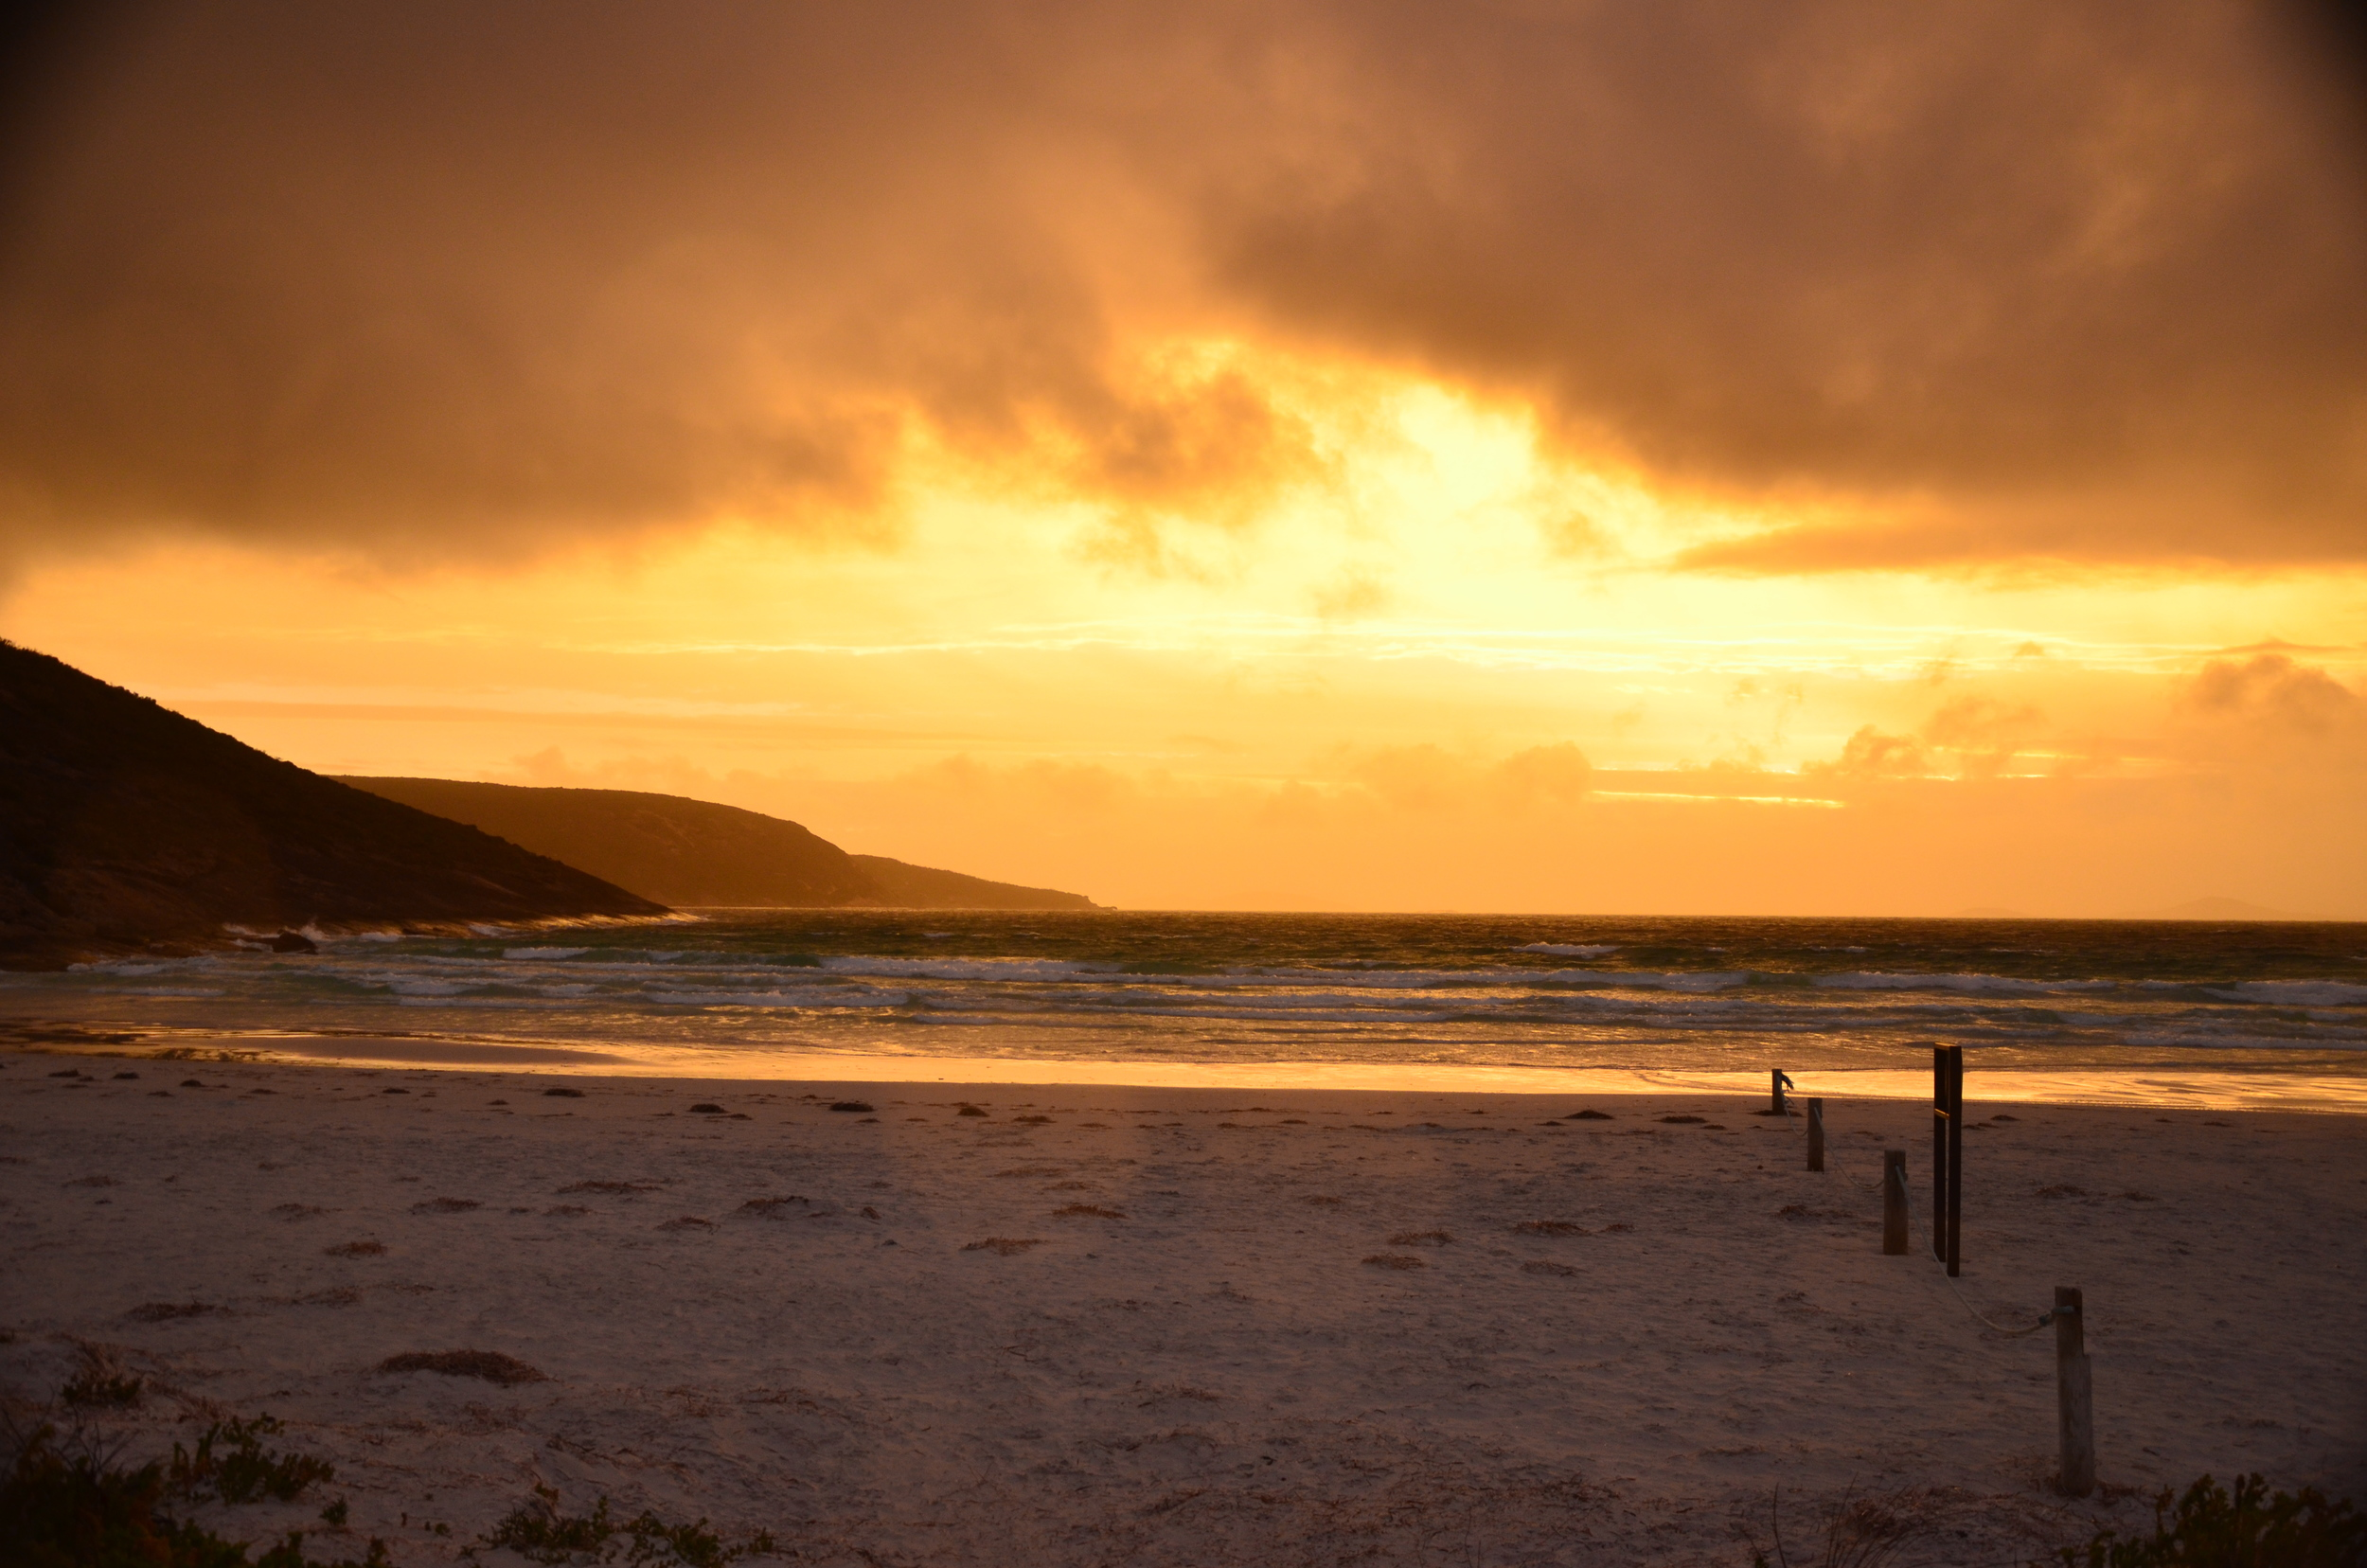 Amazing stormy sunset sky last night at Cape Le Grand